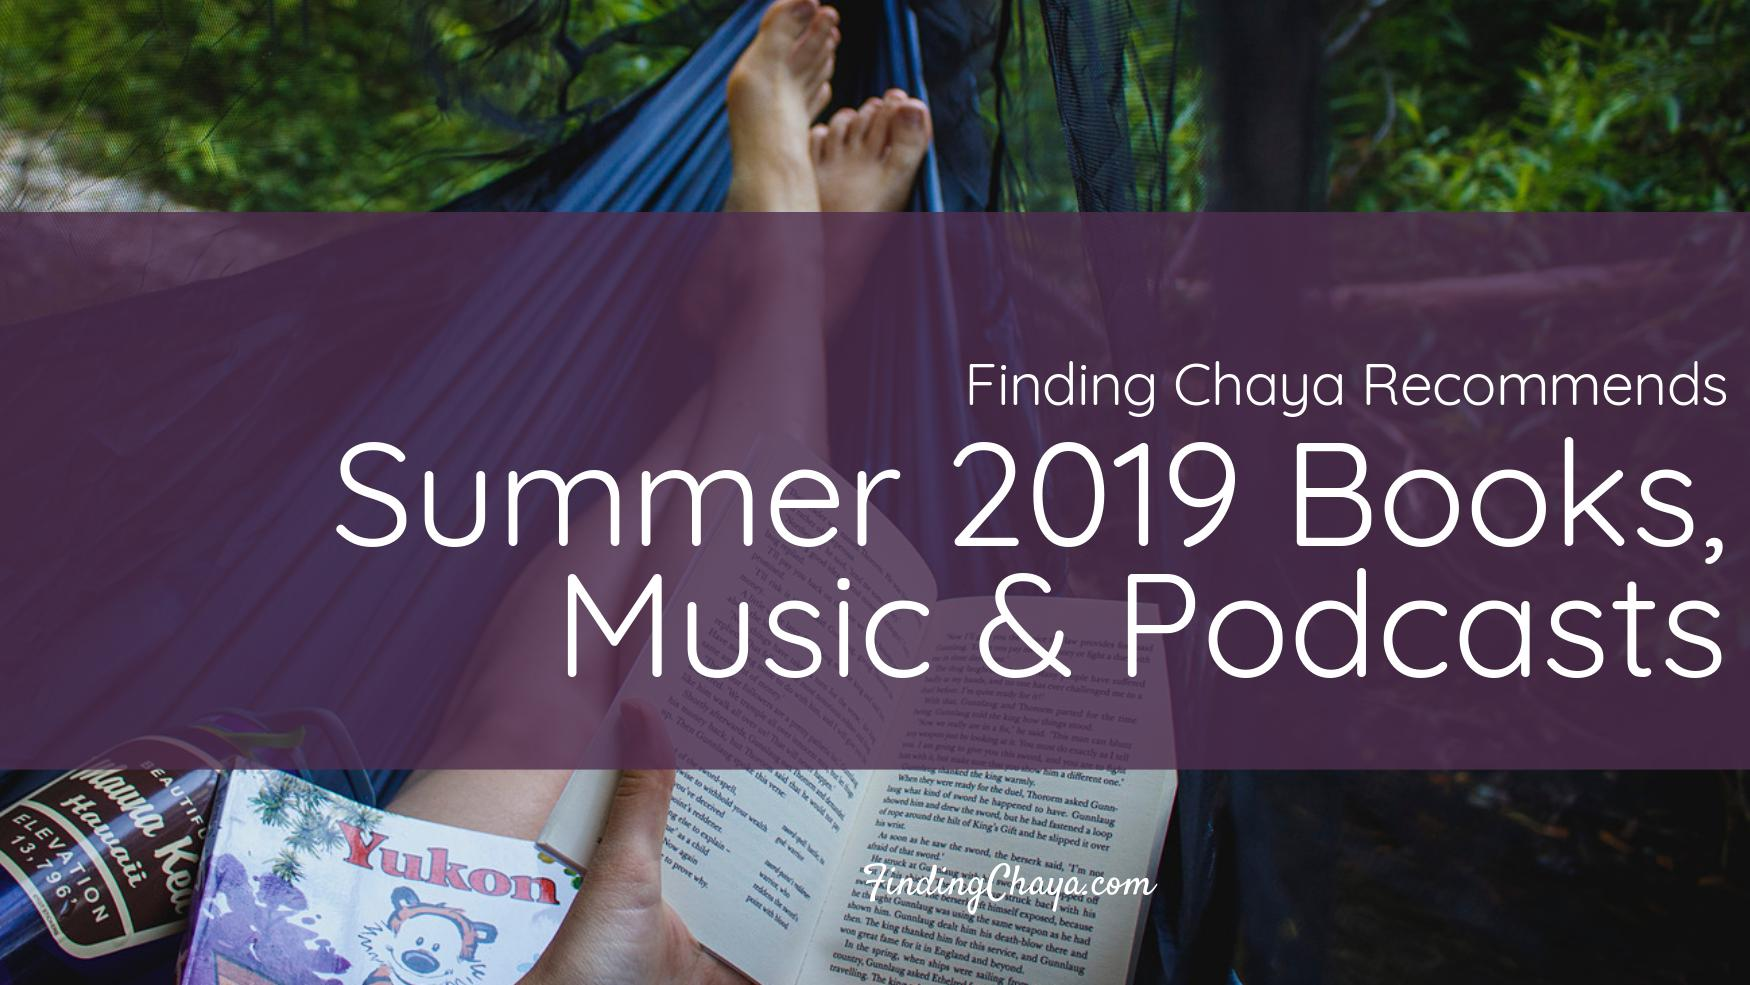 Summer 2019: Books, Podcasts, and Music Recommendations